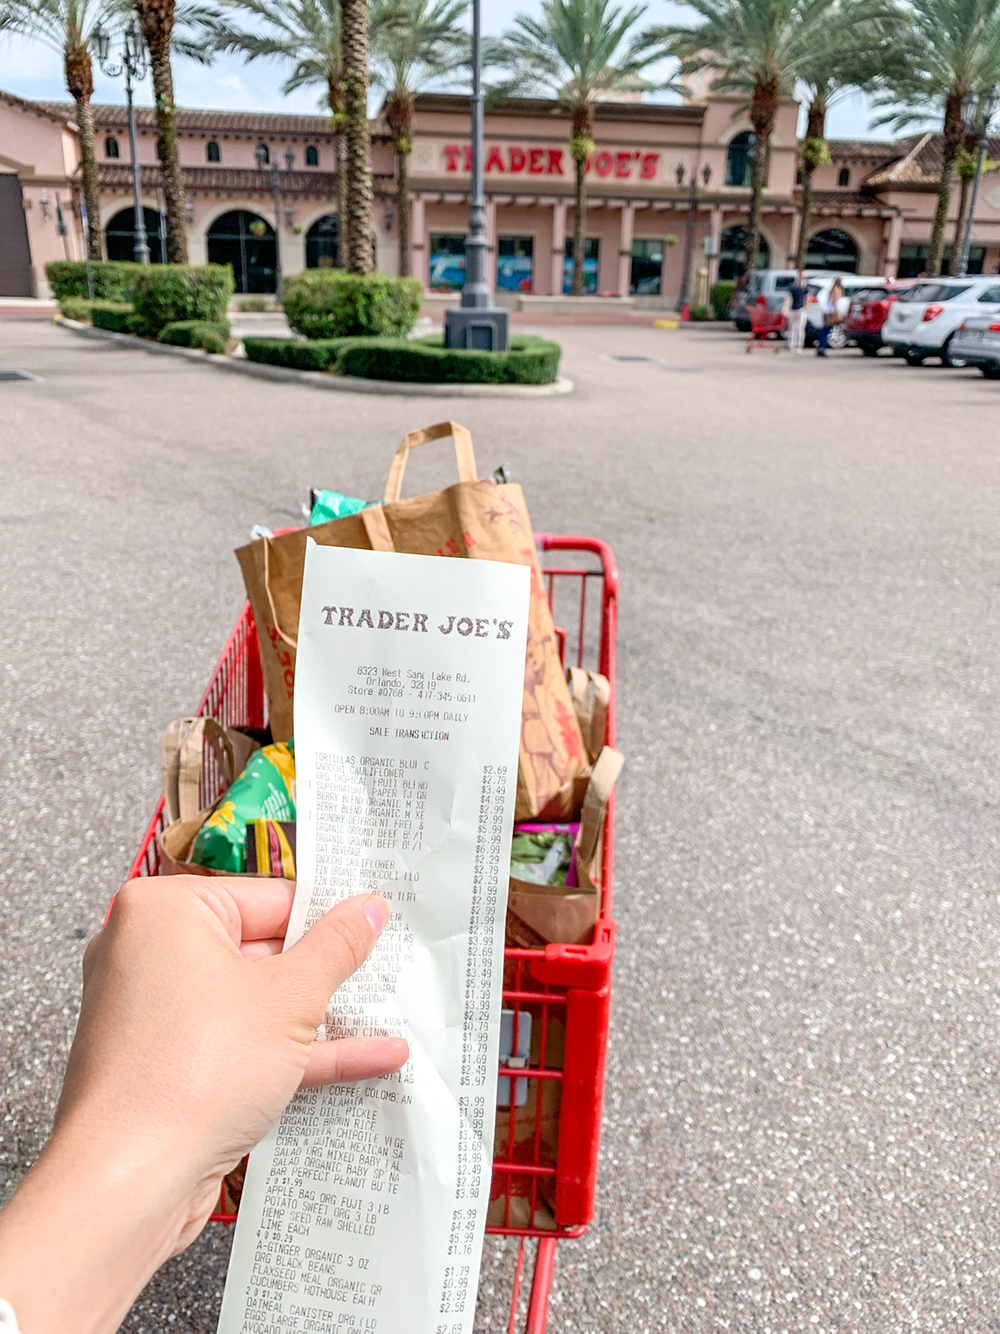 a hand holding up a Trader Joe's receipt in front of a shopping cart full of food